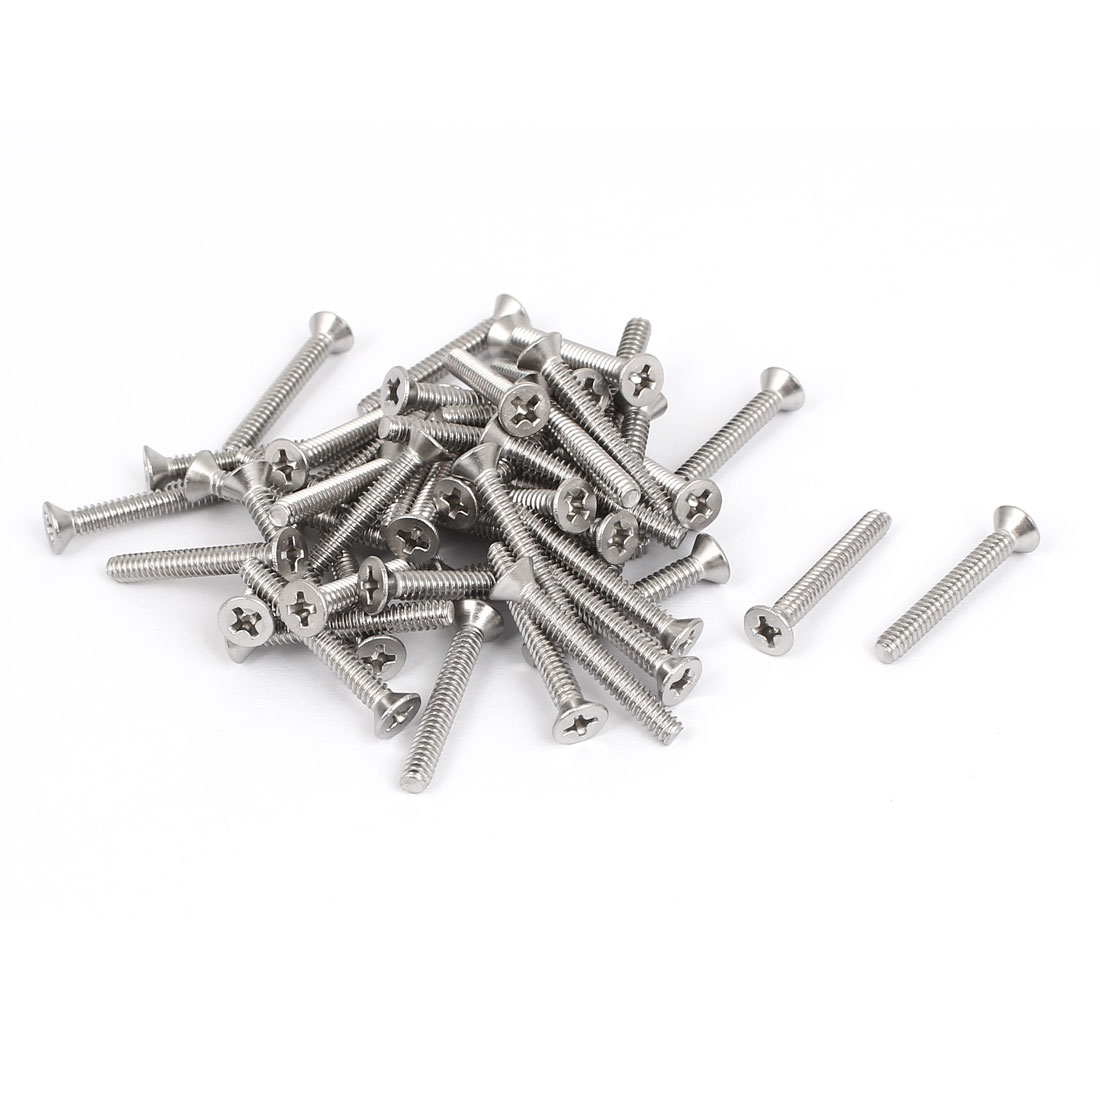 "6#-32x1"" 304 Stainless Steel Phillips Flat Countersunk Head Screws 50pcs"